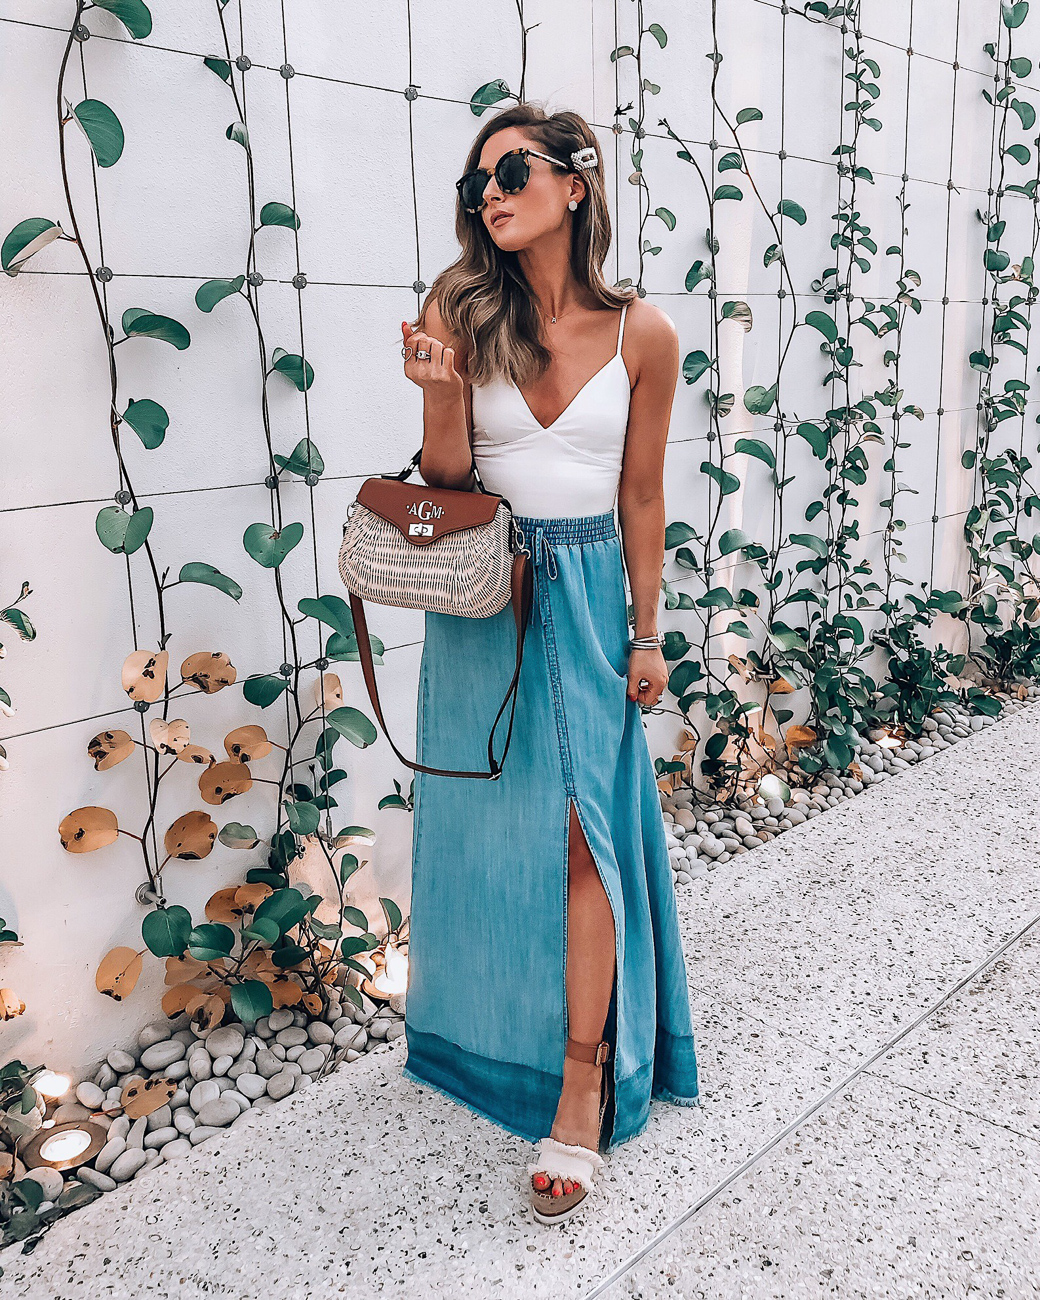 bb dakota maxi skirt